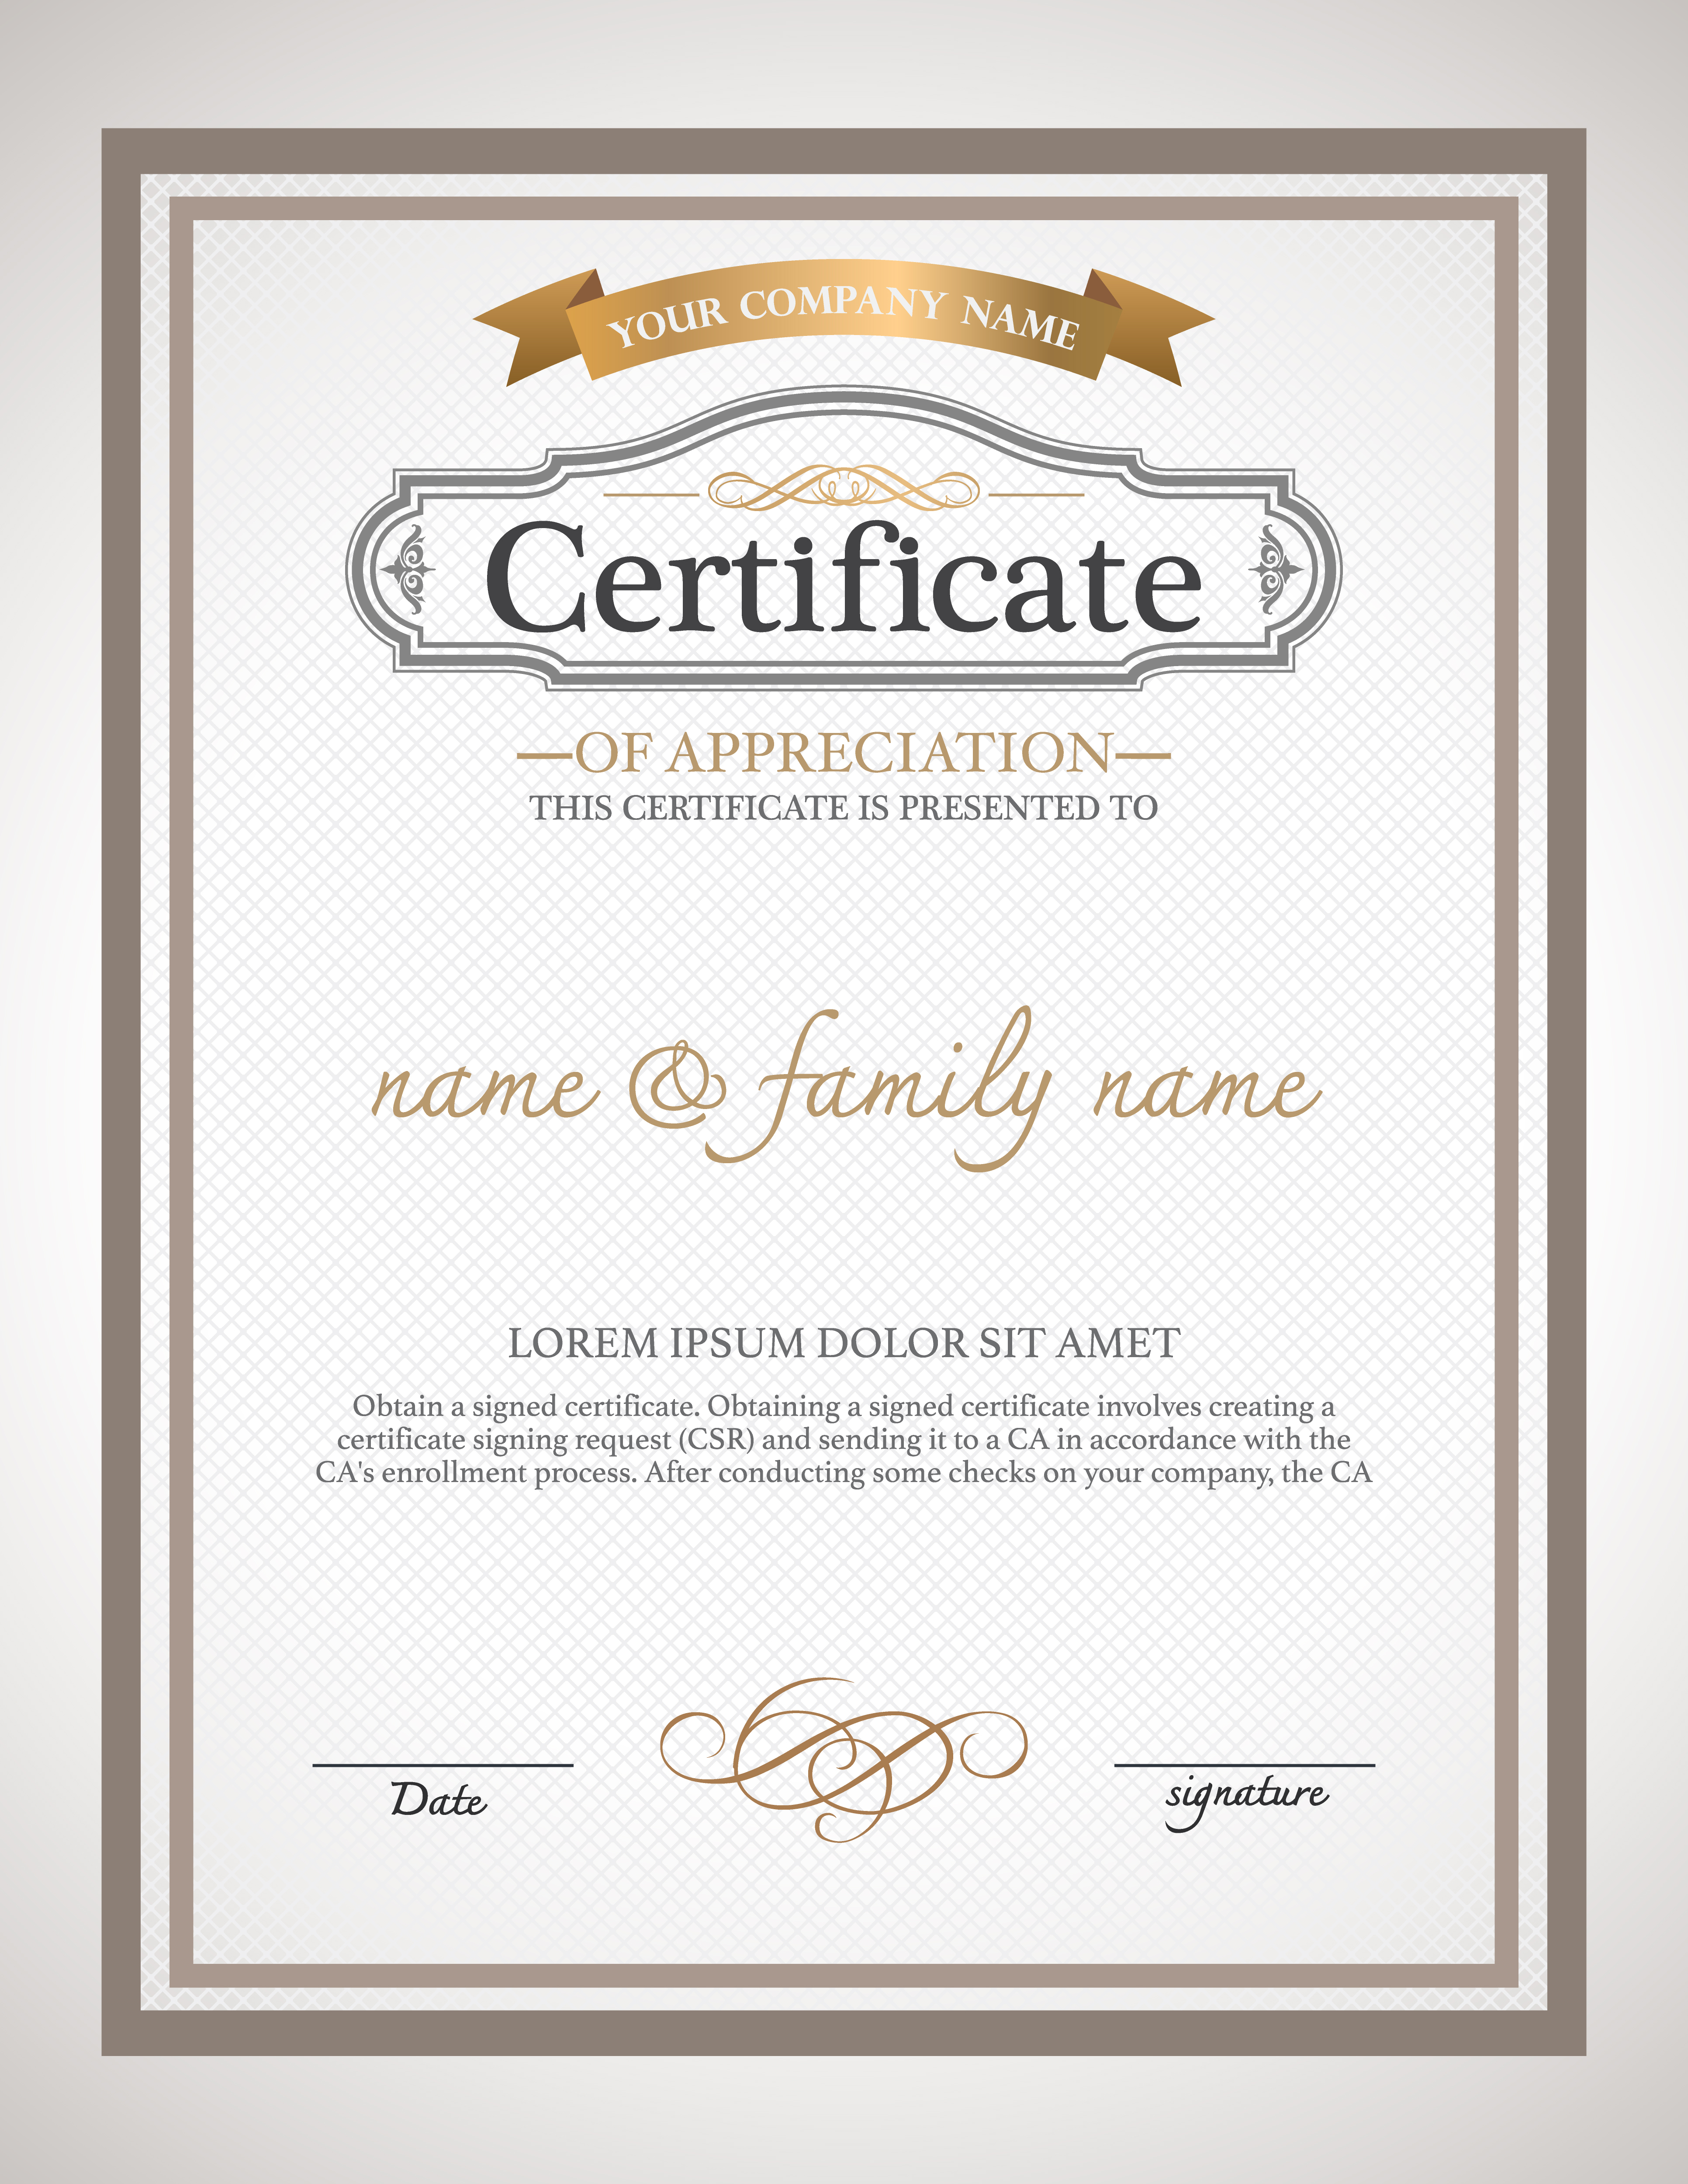 Templates Of Certificates 51